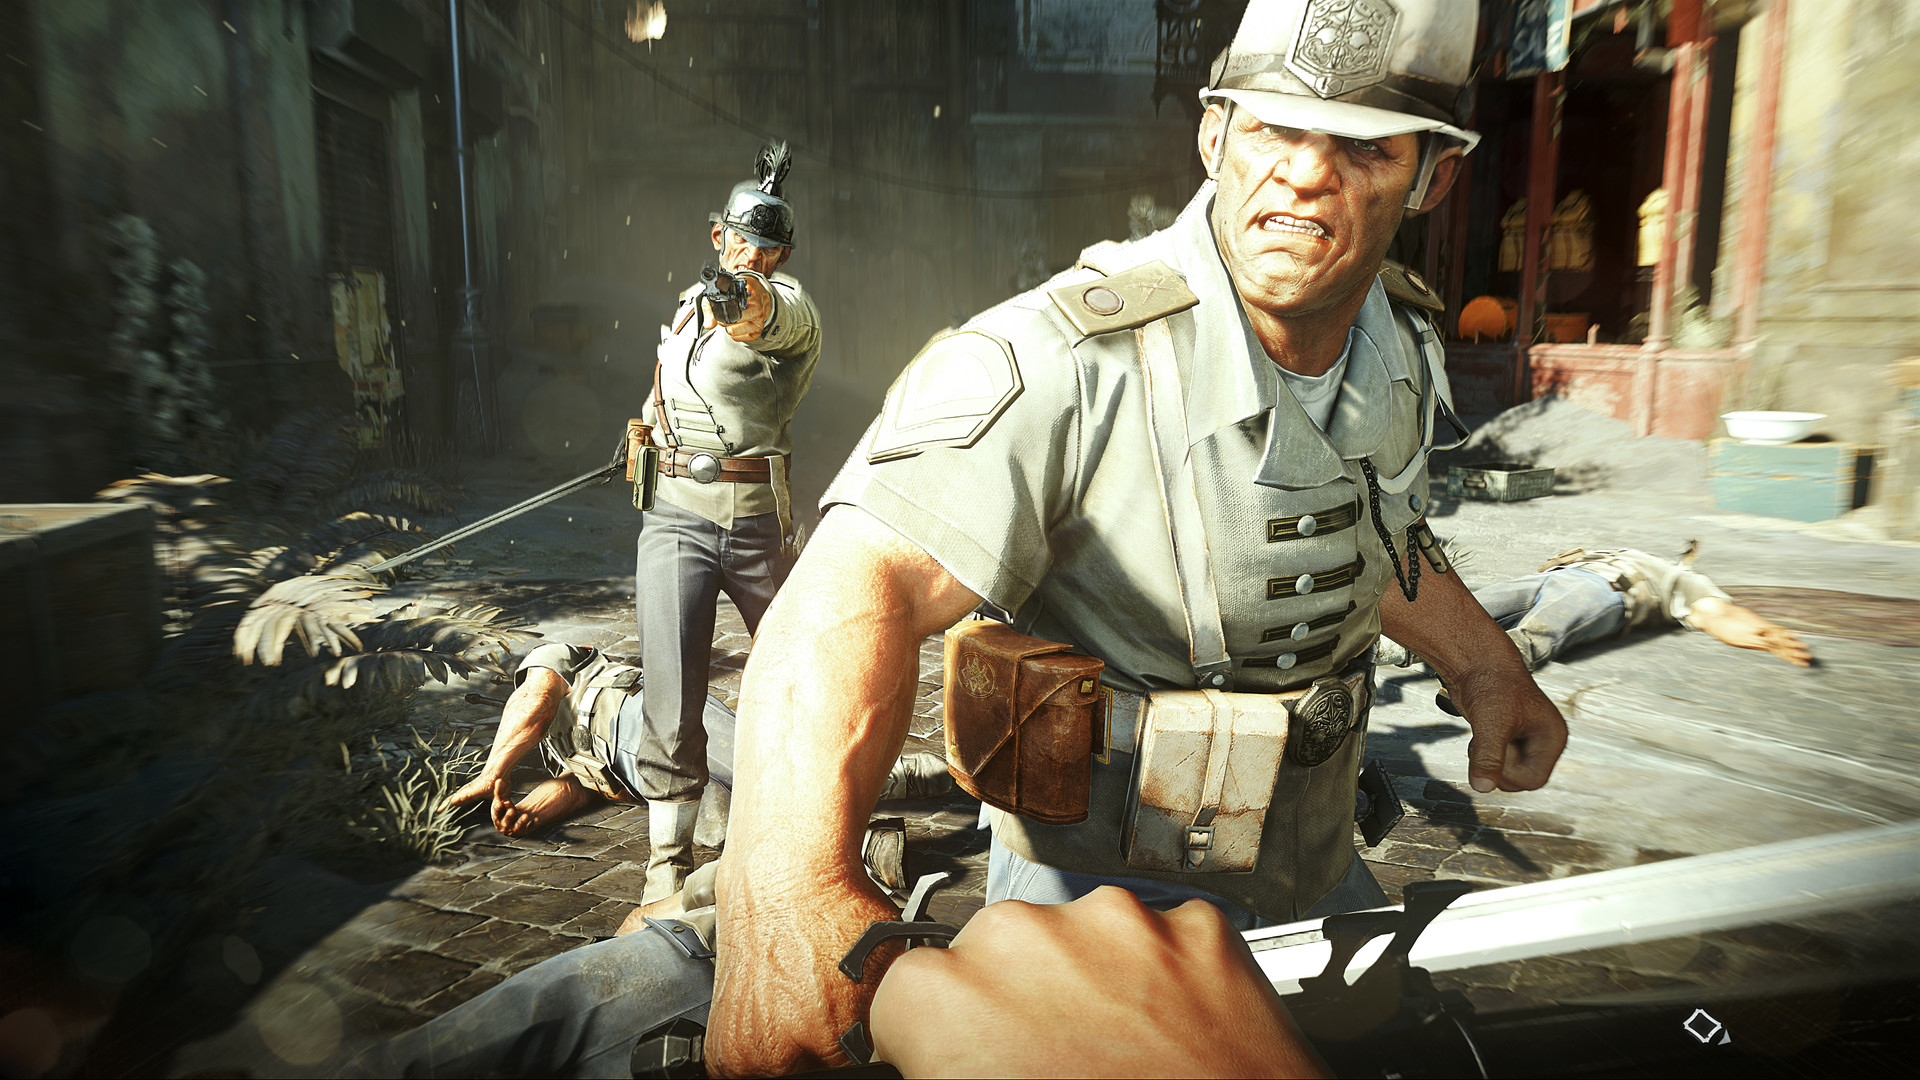 Two grizzled guards looking at the player in Dishonored 2 with some alarm. They appear to have been surprised by the player, who is holding a big stabby knife